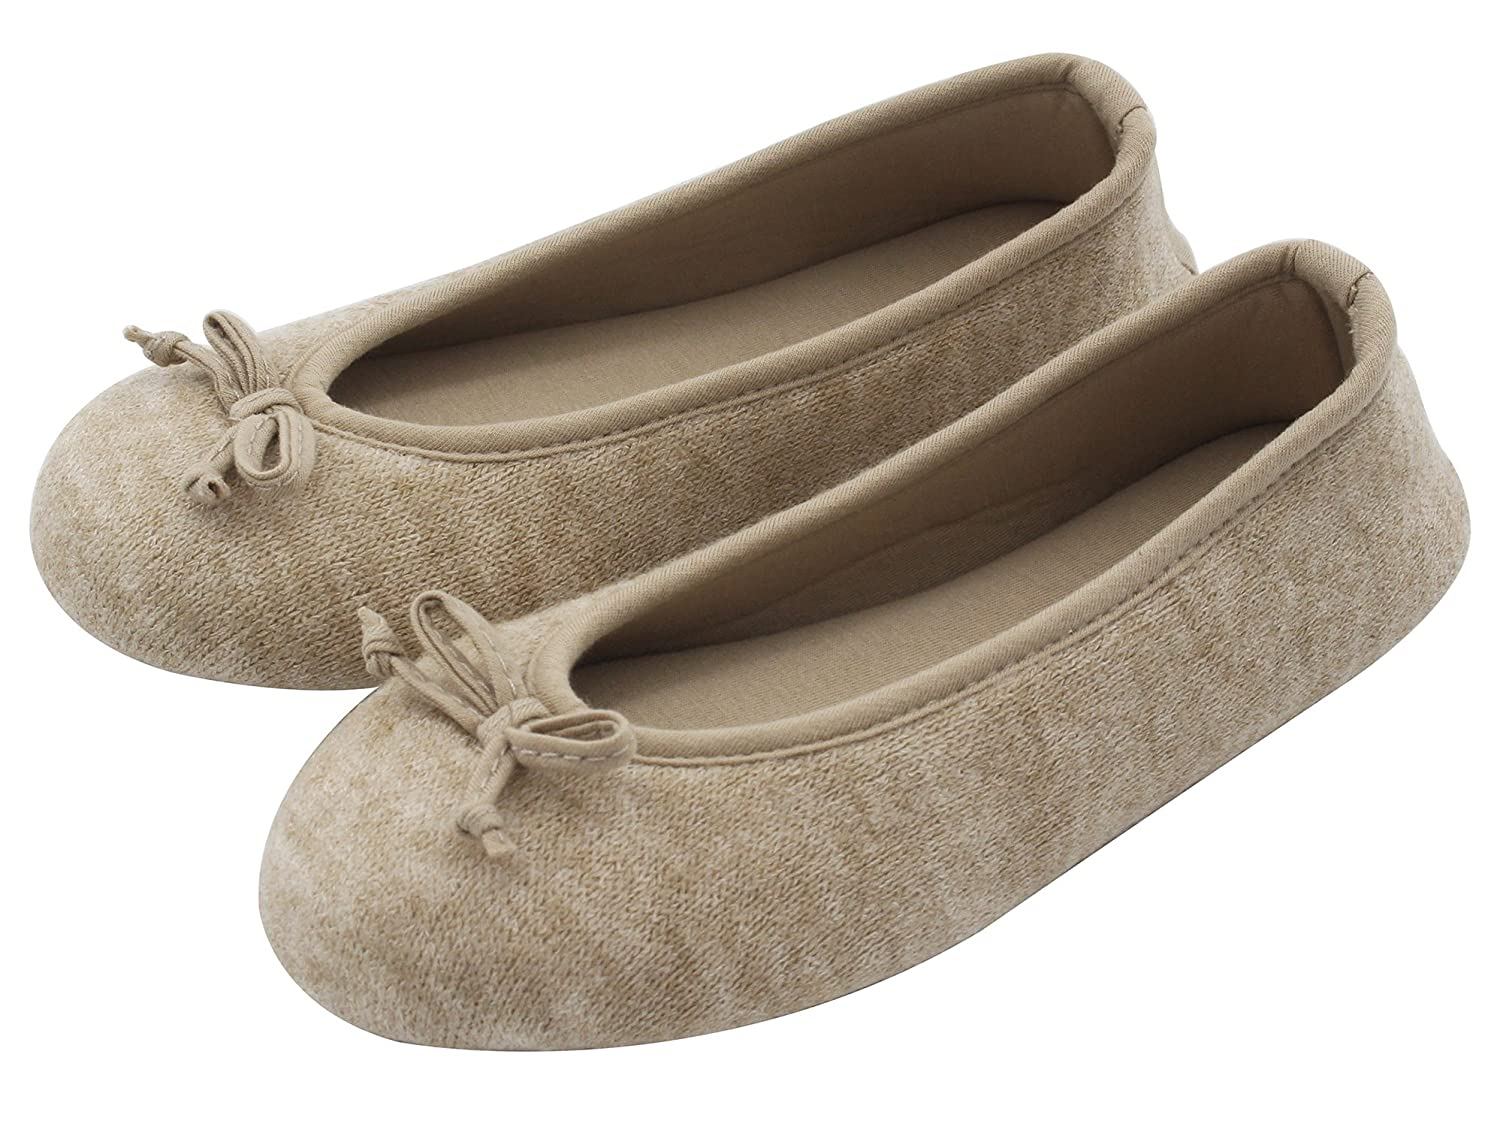 HomeTop Beige , HomeTop Chaussons pour femme femme Beige 8255789 - jessicalock.space